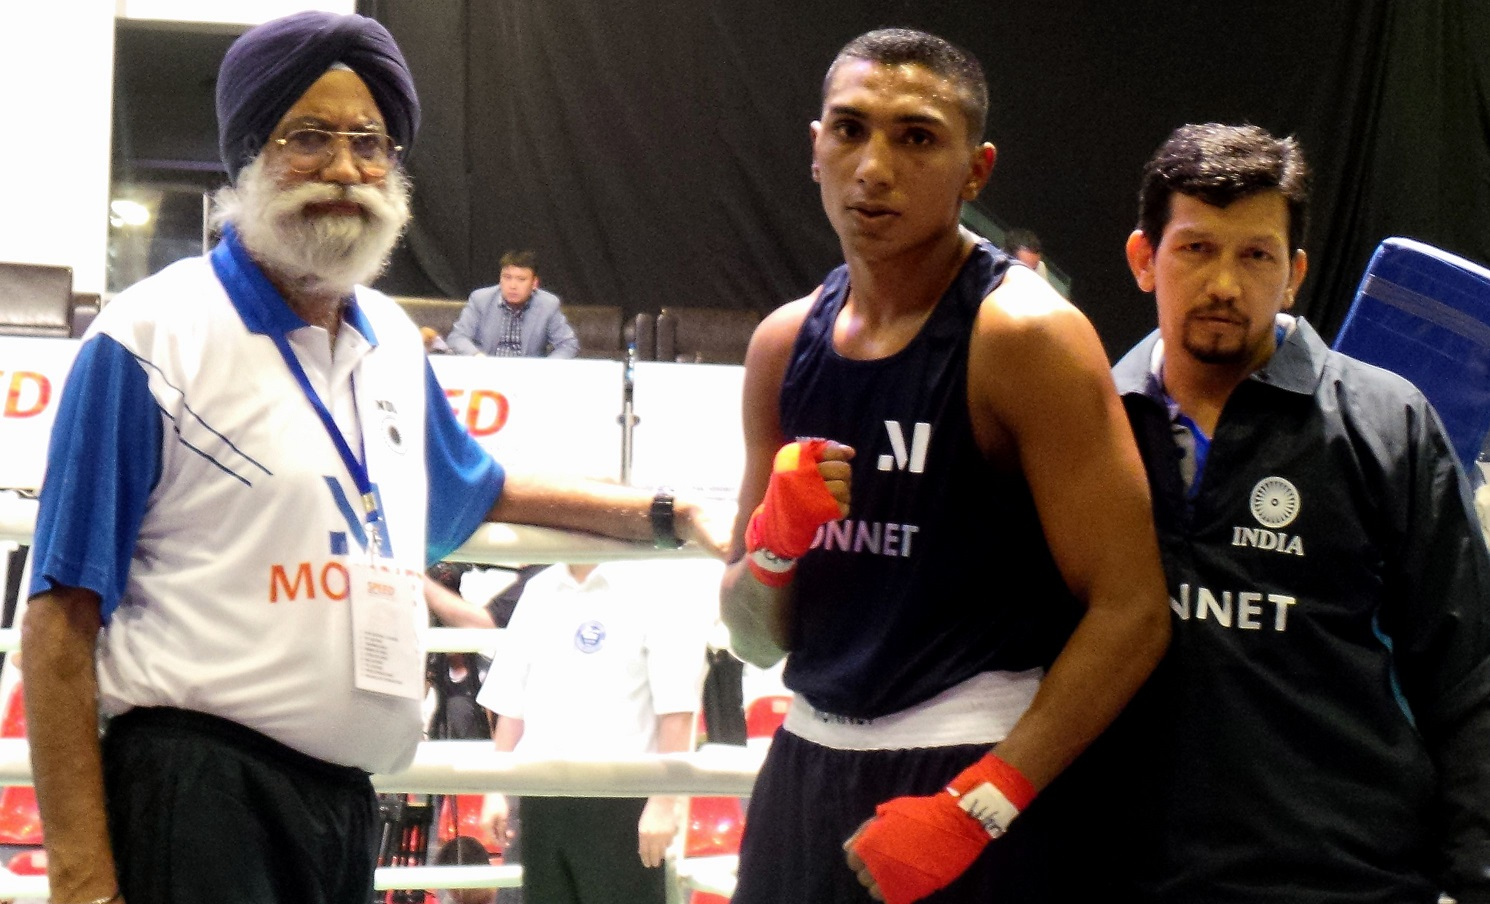 Sukhdeep Singh (75kg) in his Monnet Kit, opens with a win at the Asian Championships